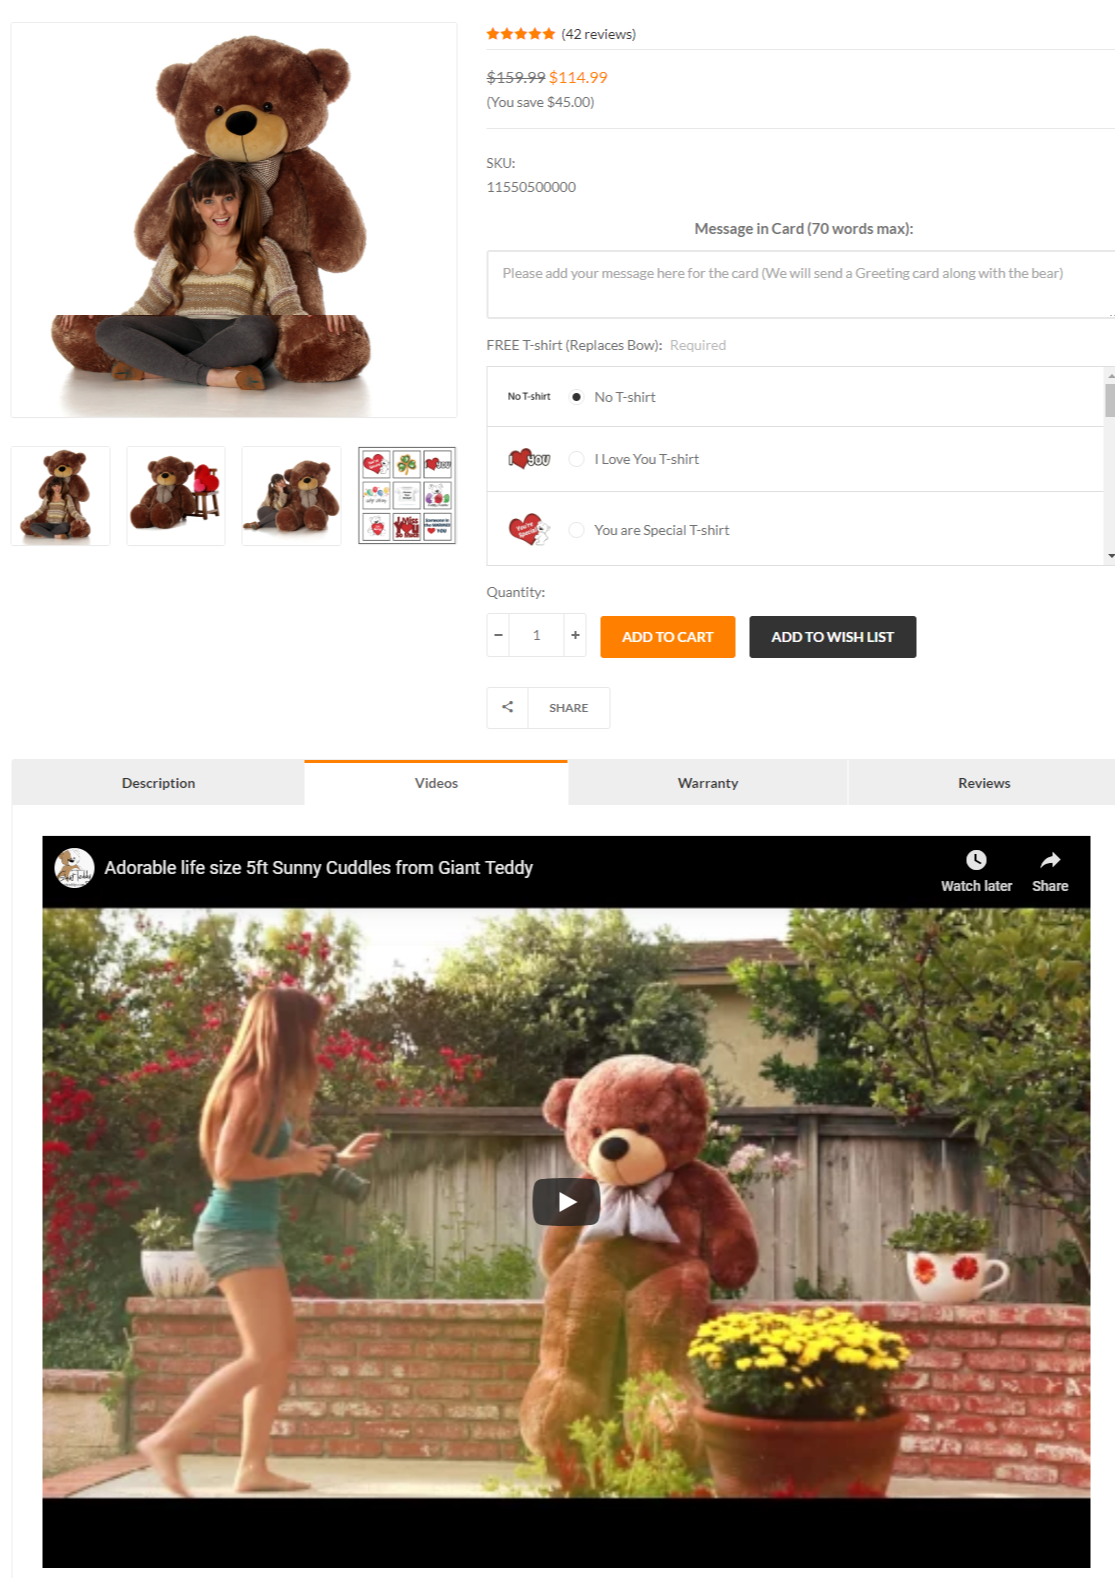 GiantTeddy Product Page